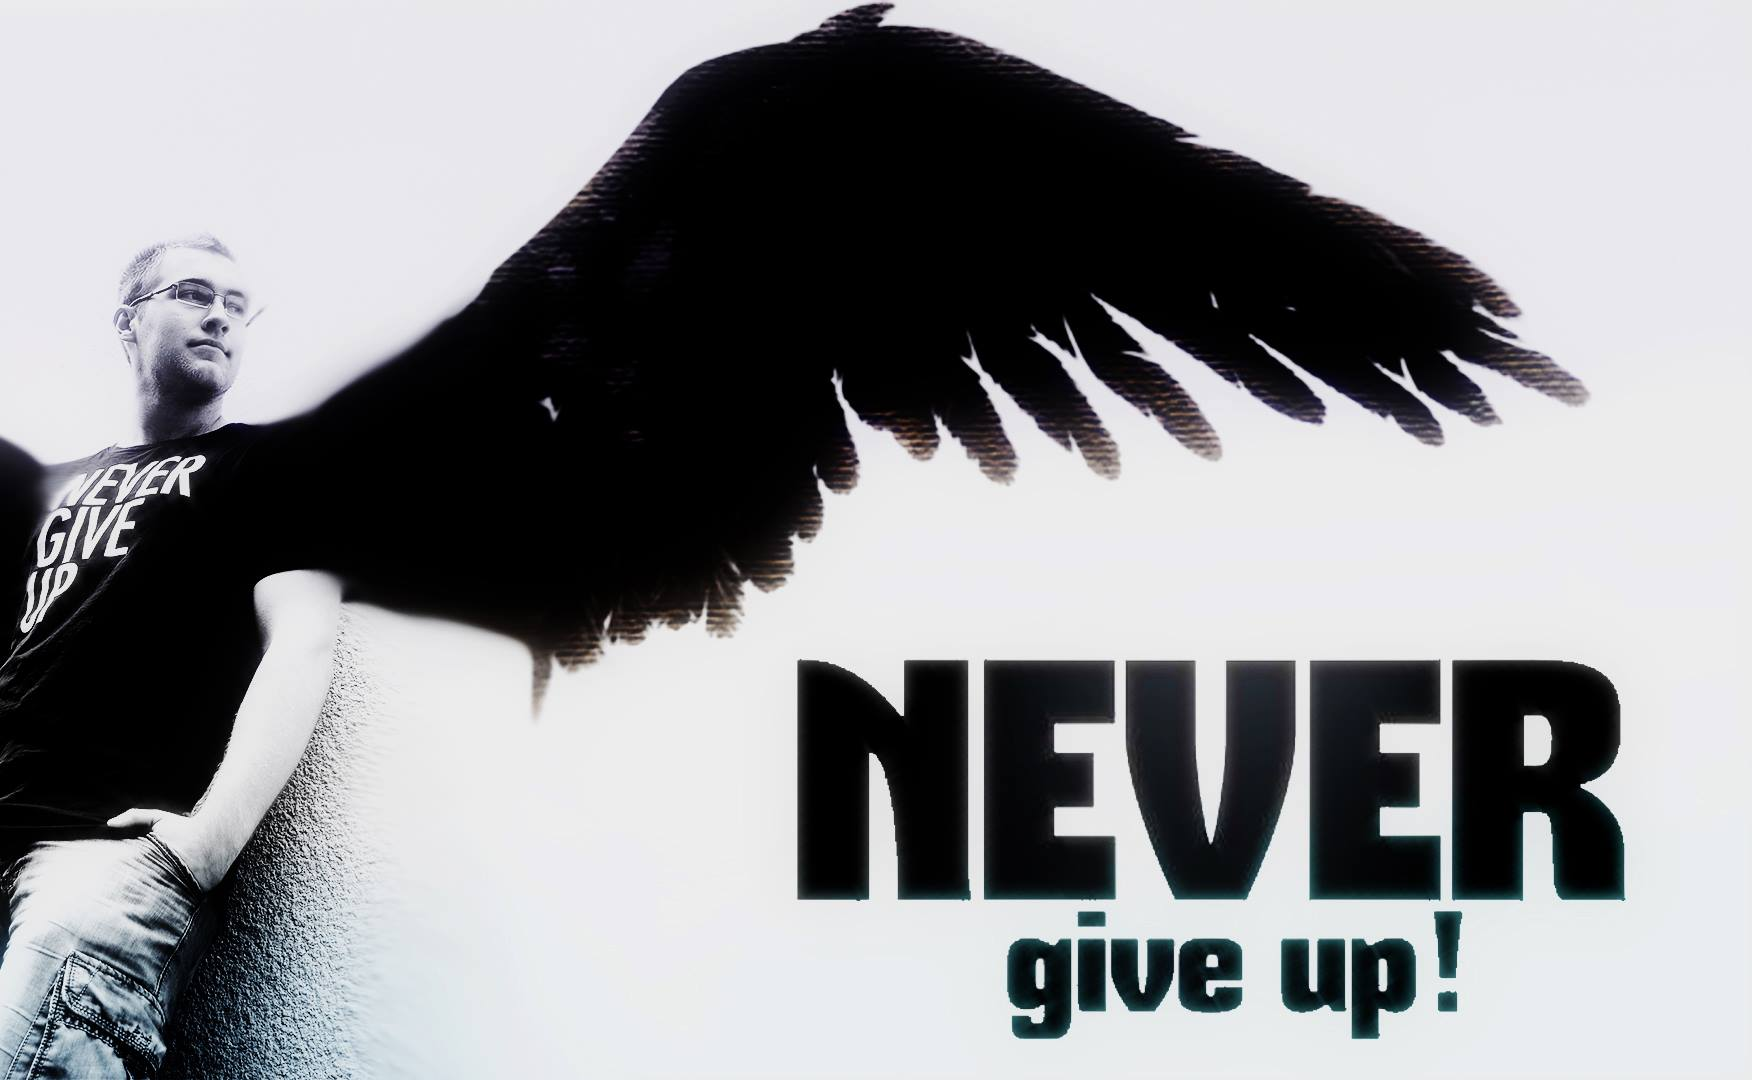 Never give up angel computer wallpapers desktop - Never give up wallpapers desktop hd ...